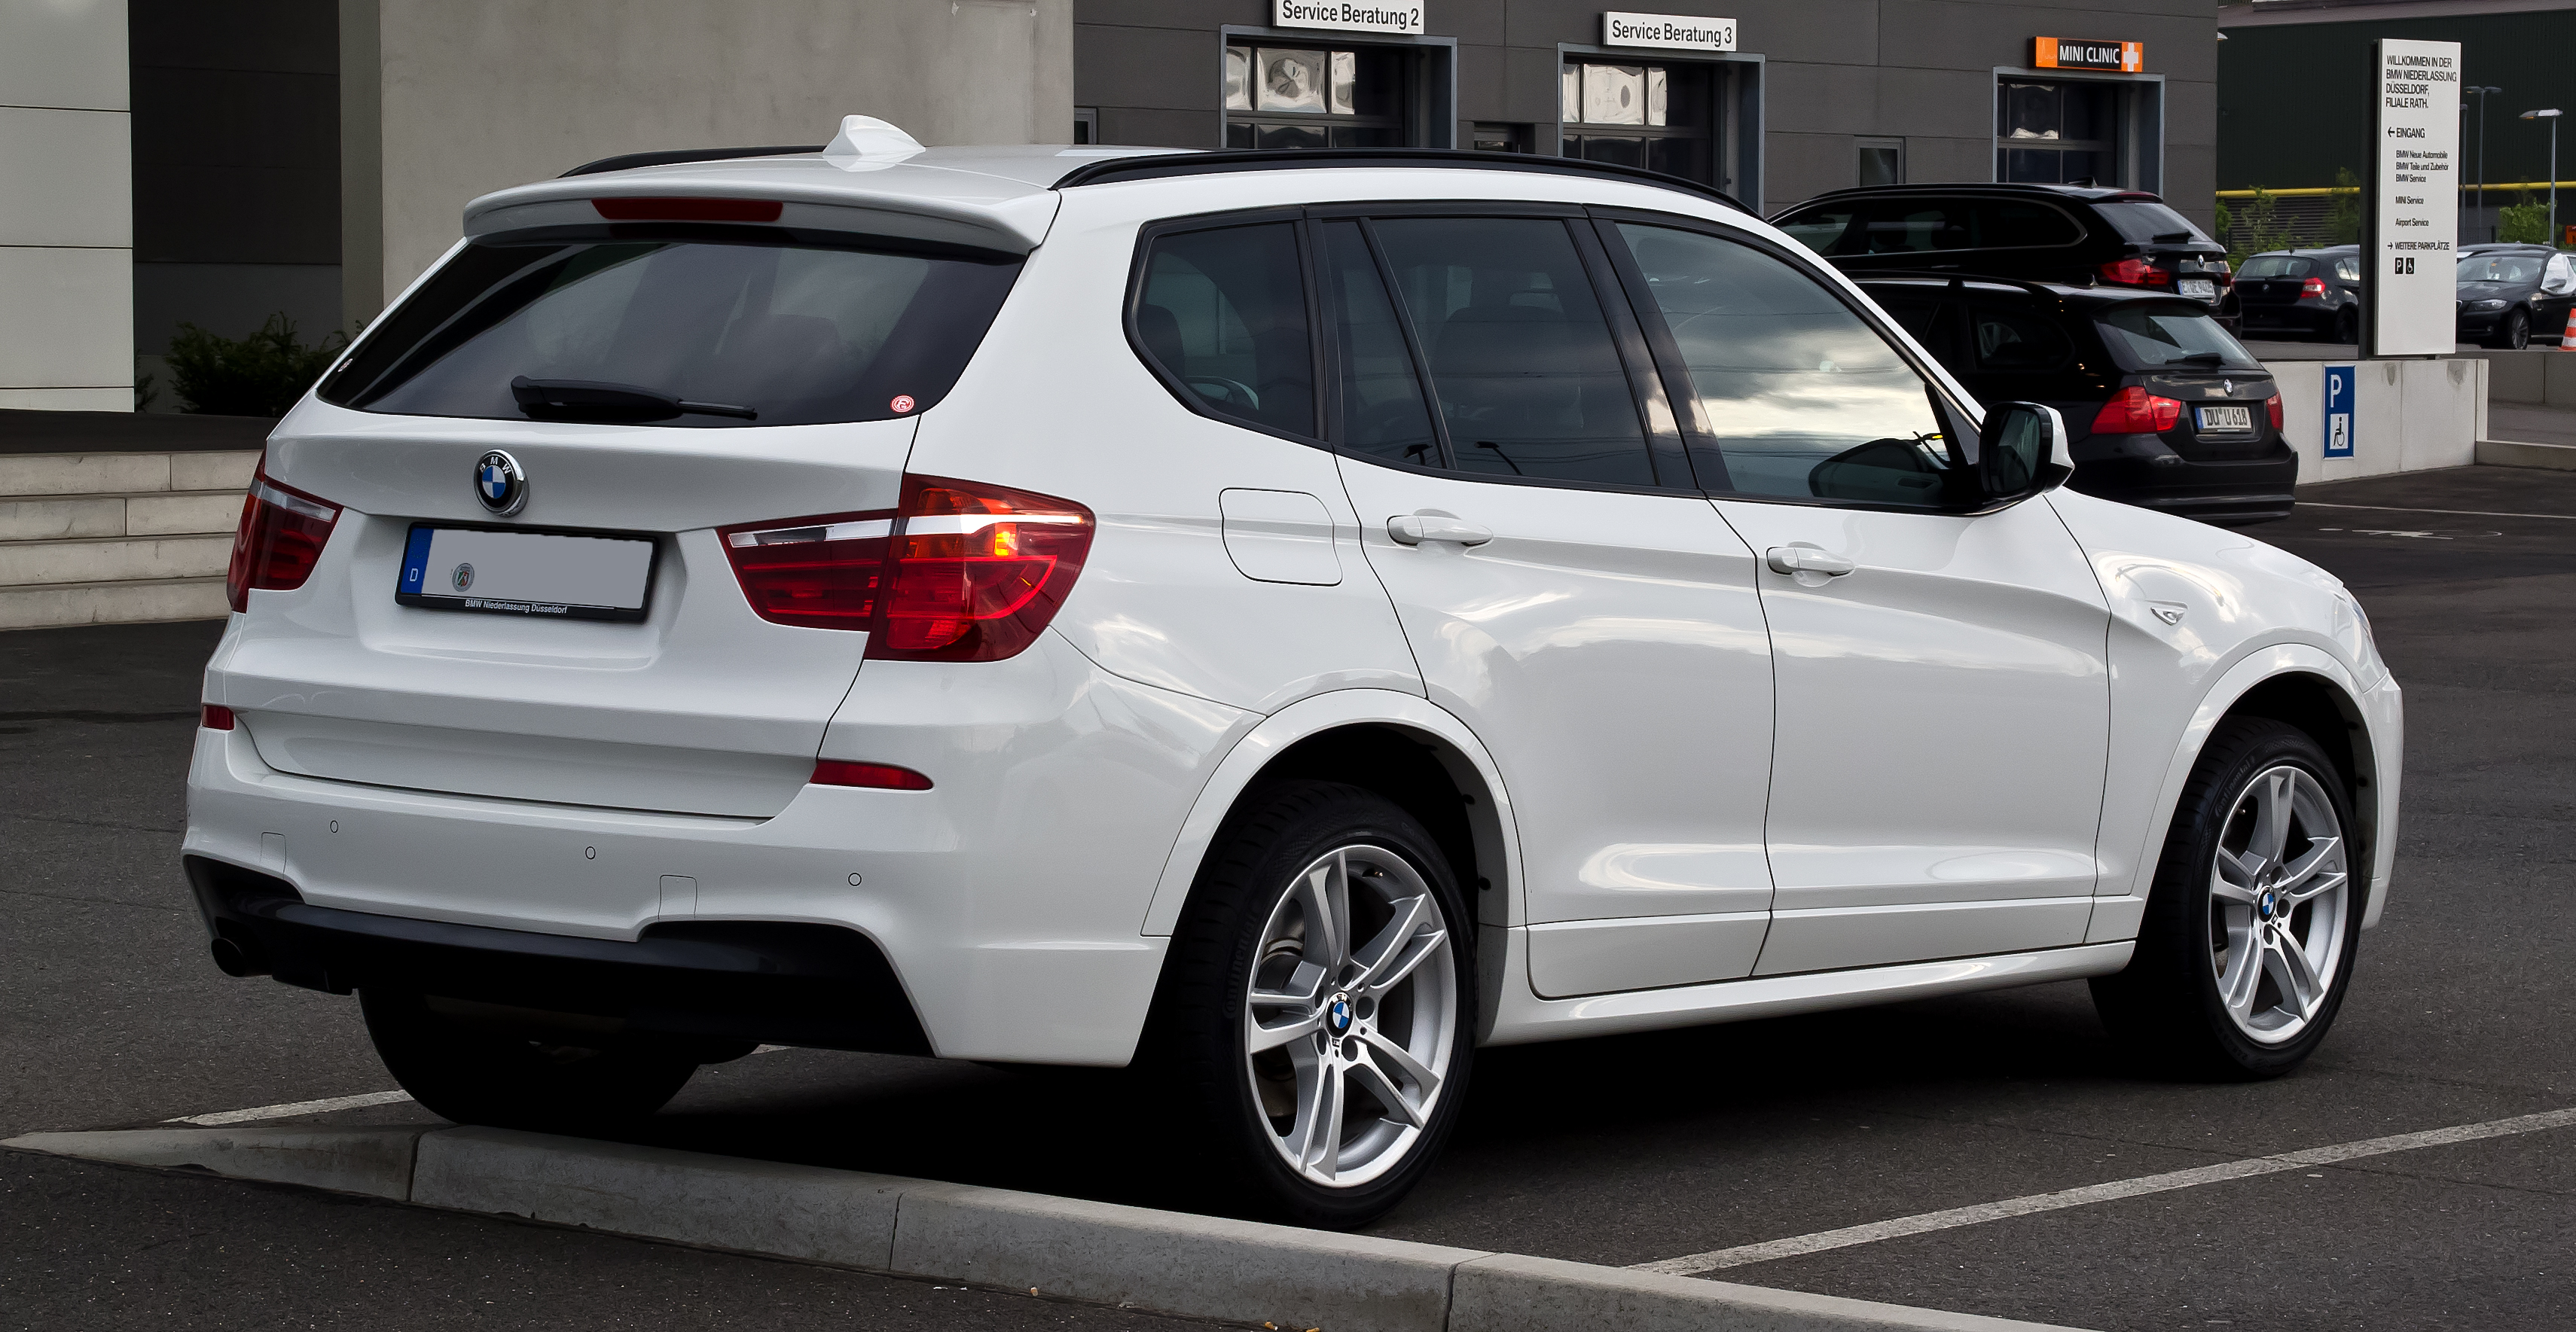 2012-BMW-X3-M submited images